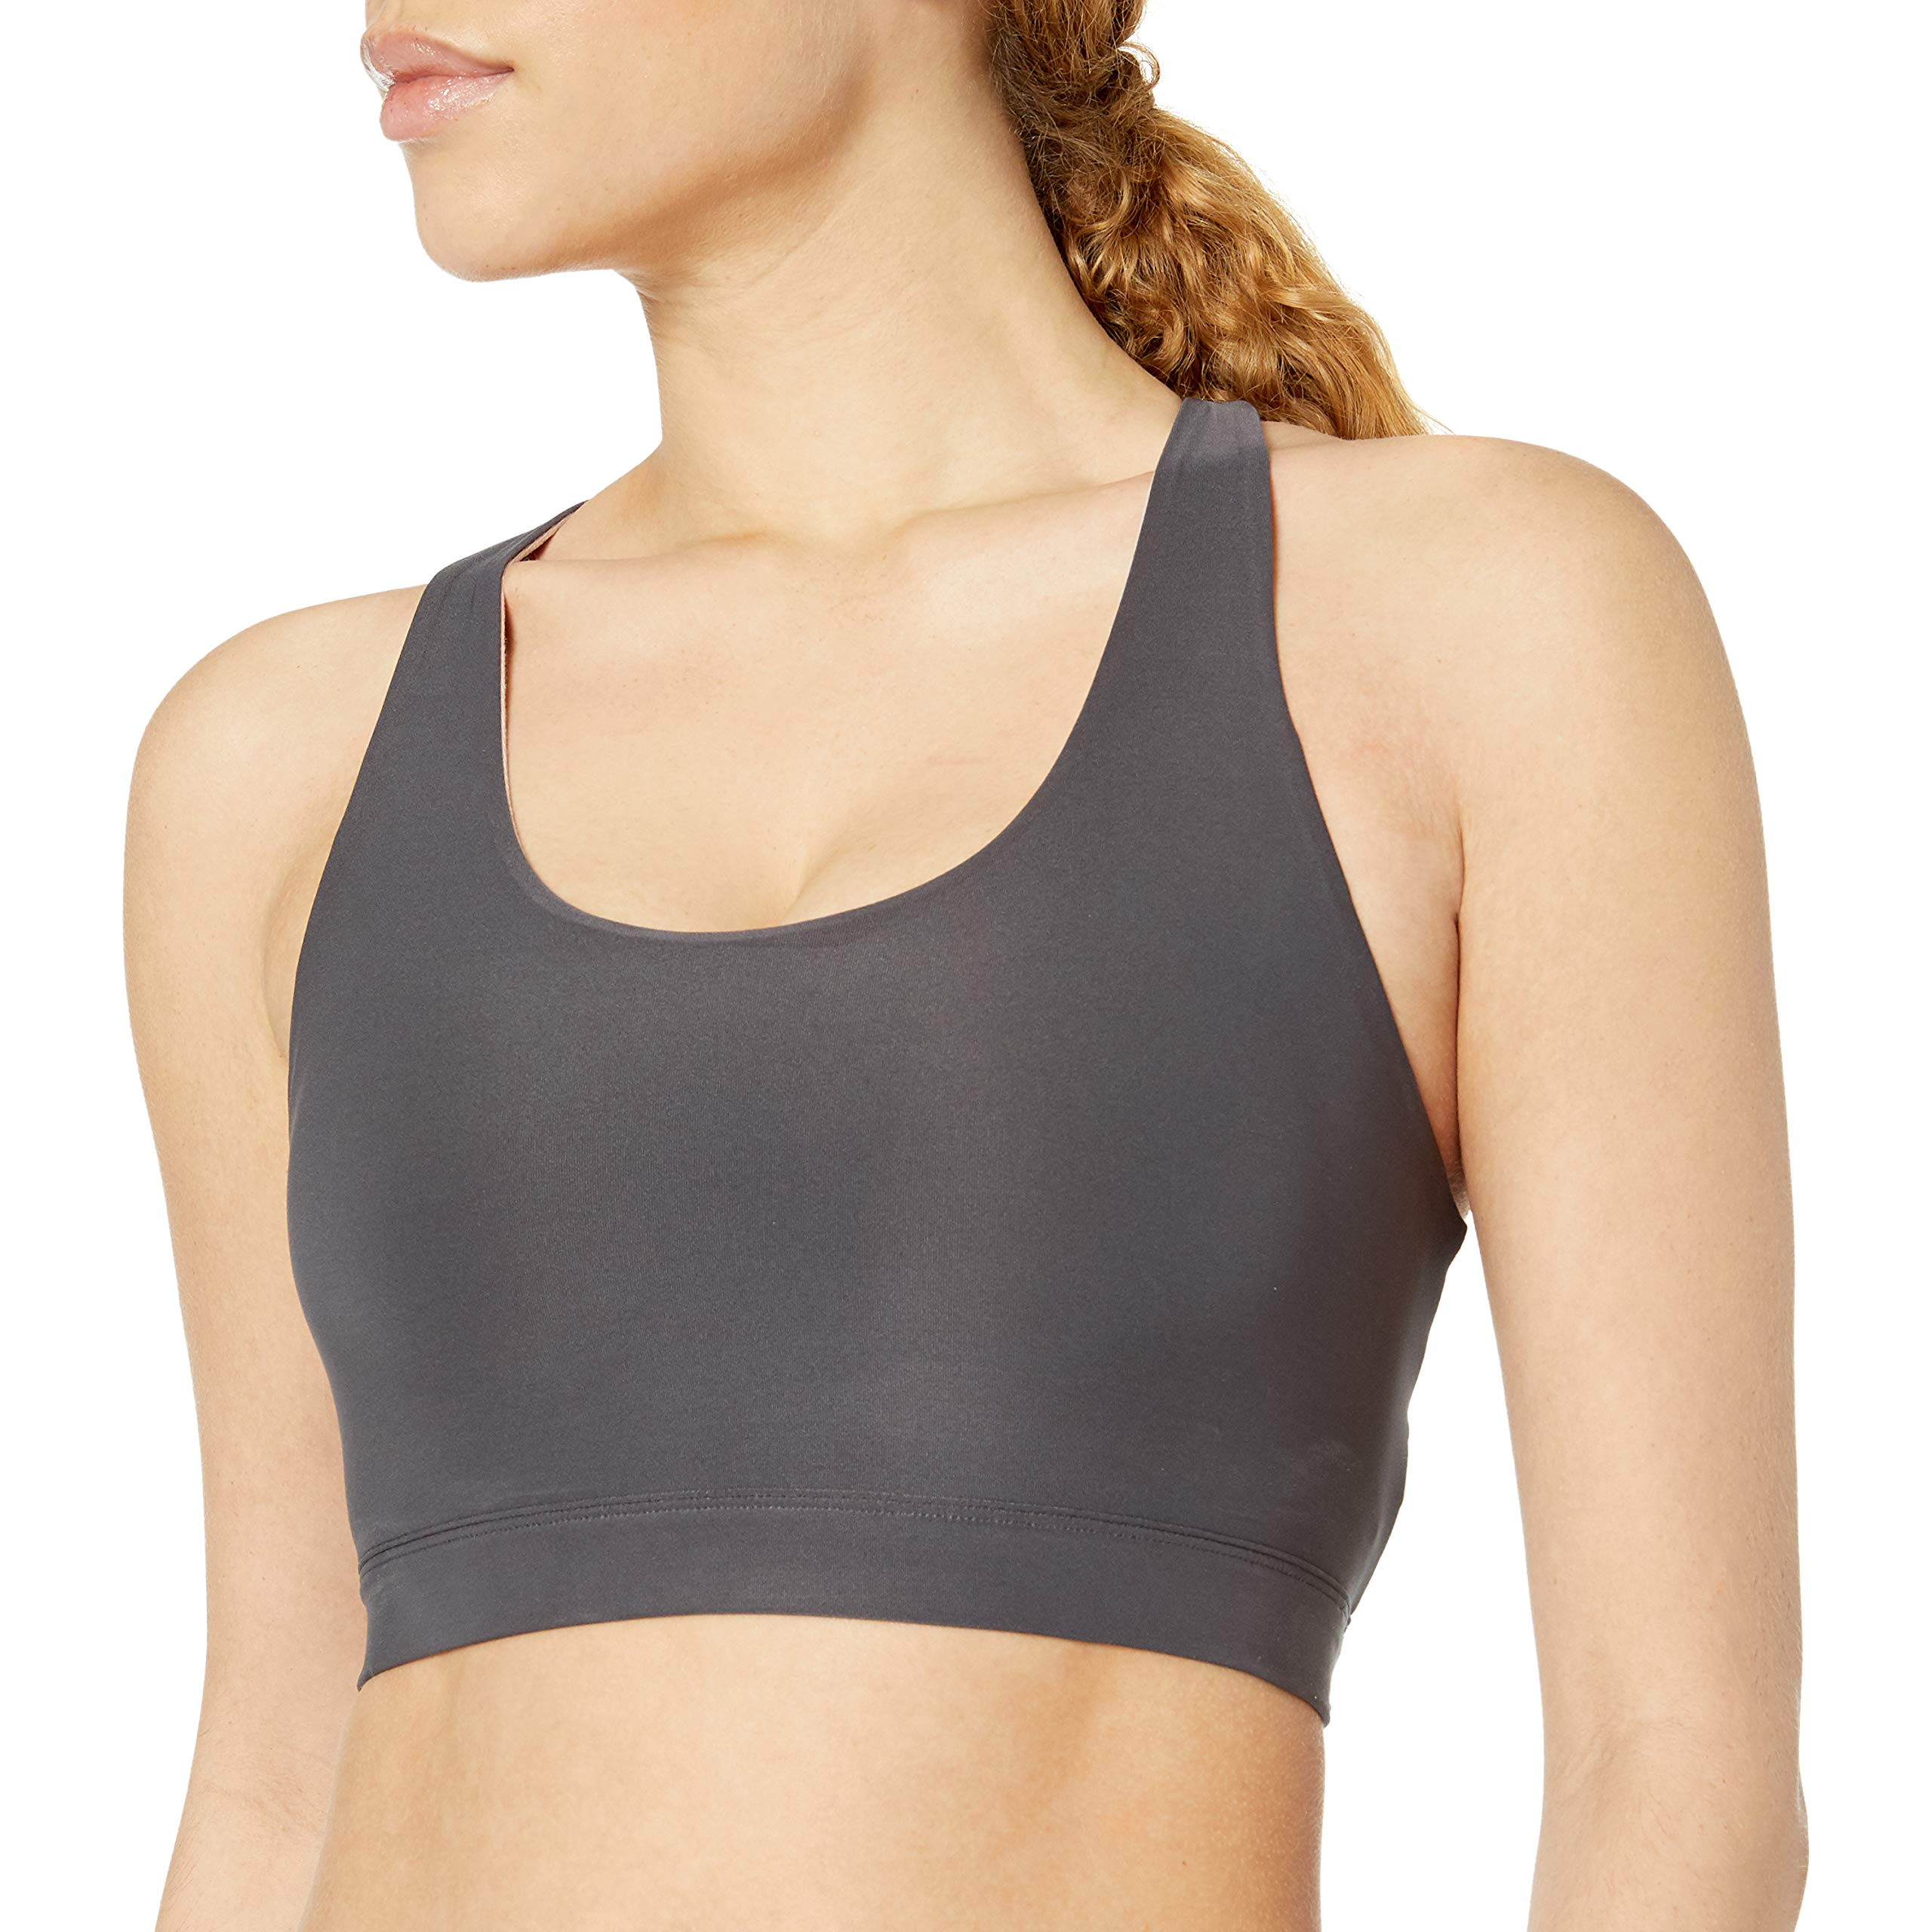 Brand Core 10 Womens Scallop Racerback Yoga Sports Bra